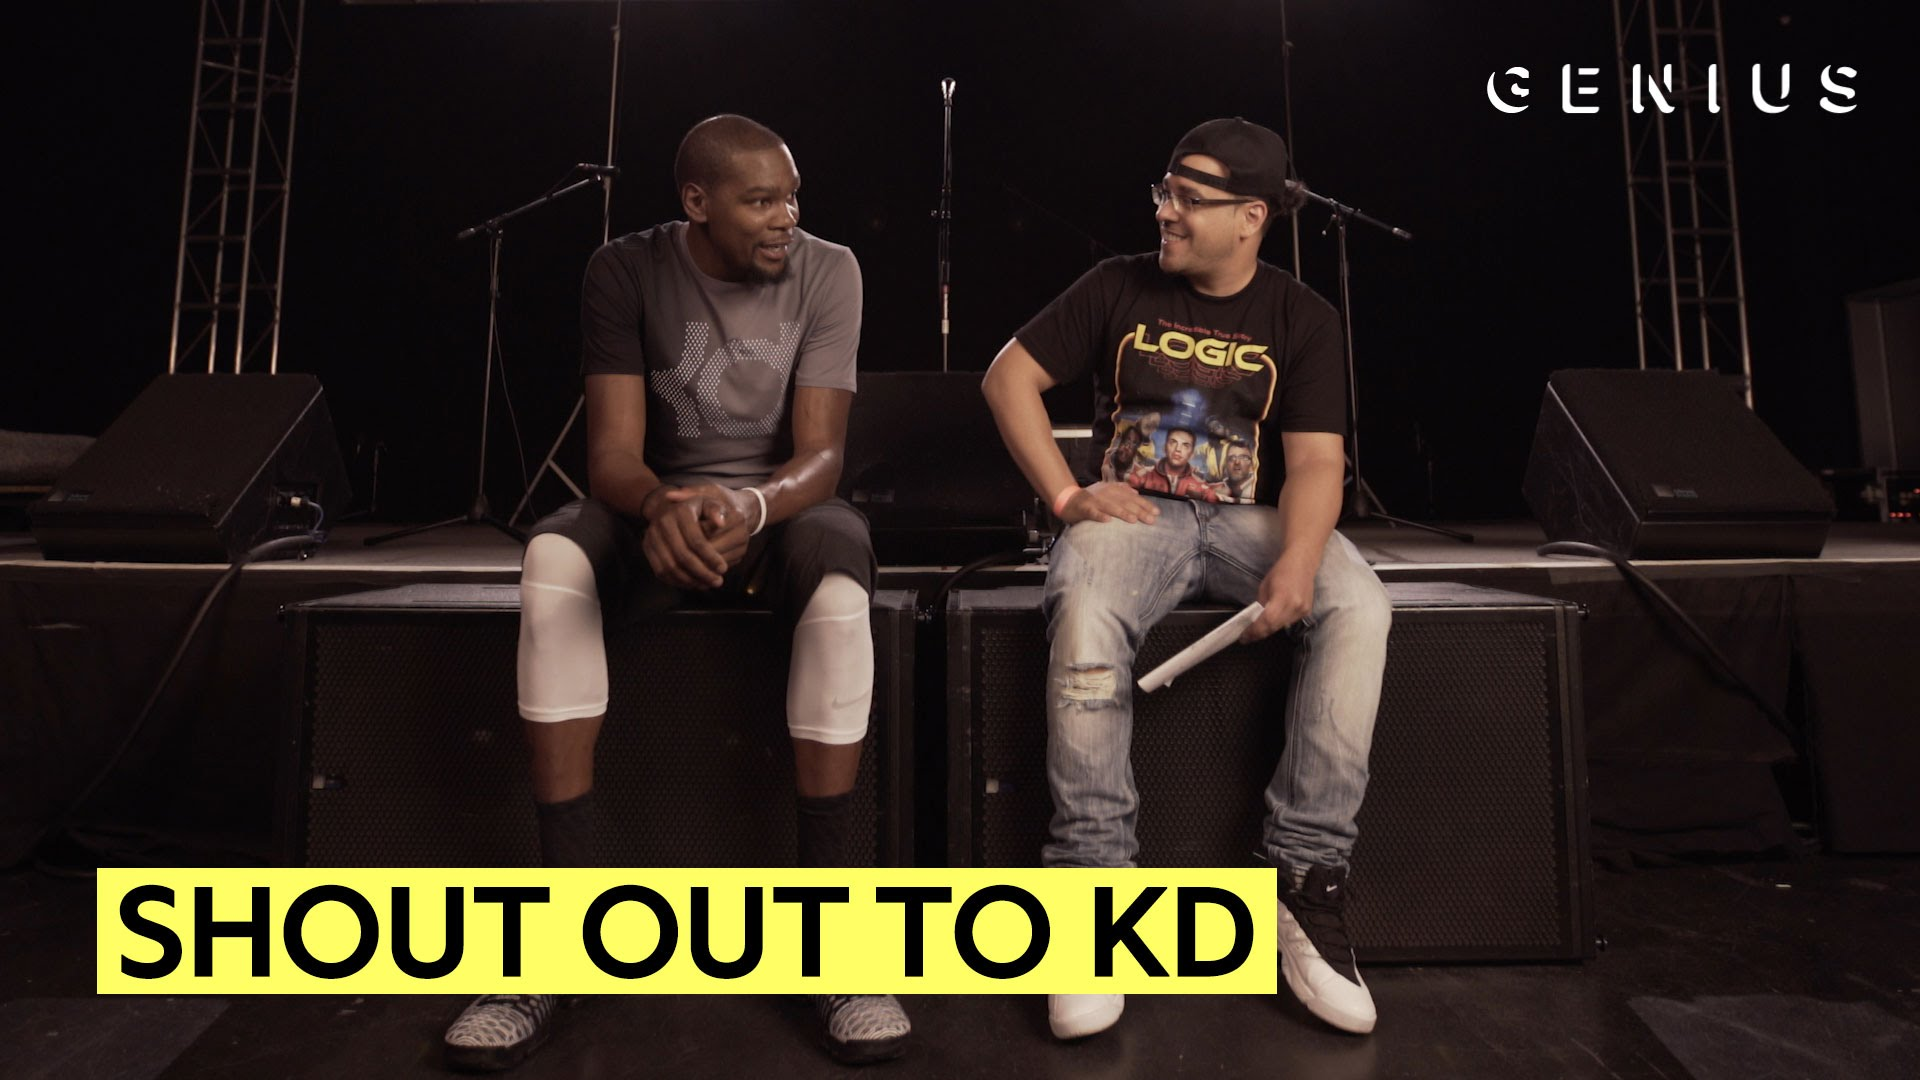 Kevin Durant reacts to being named by rappers in songs